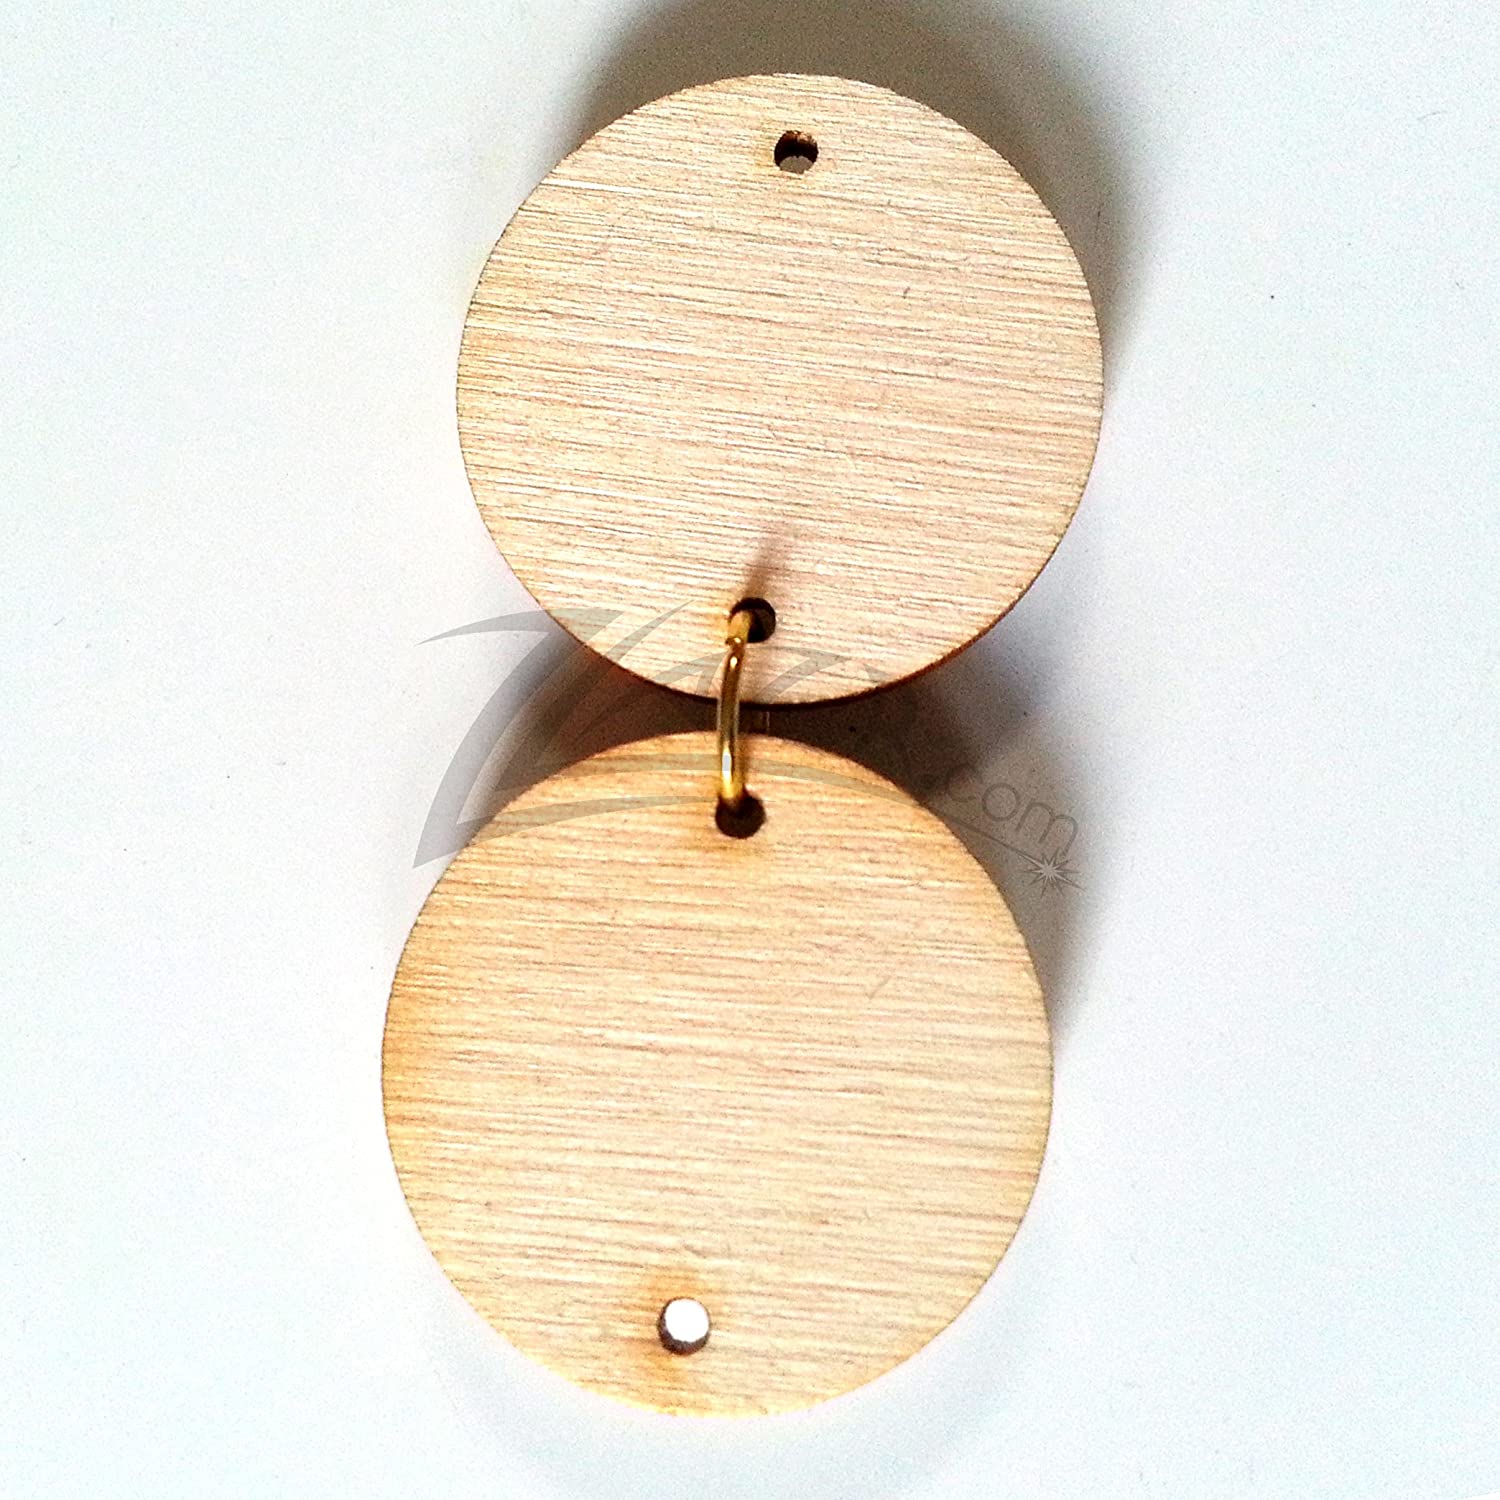 1 Inch X 18 Wood Circle With 2 Hole Family Birthday Date Board Disc Tags Fast Shipping Form Usa 100